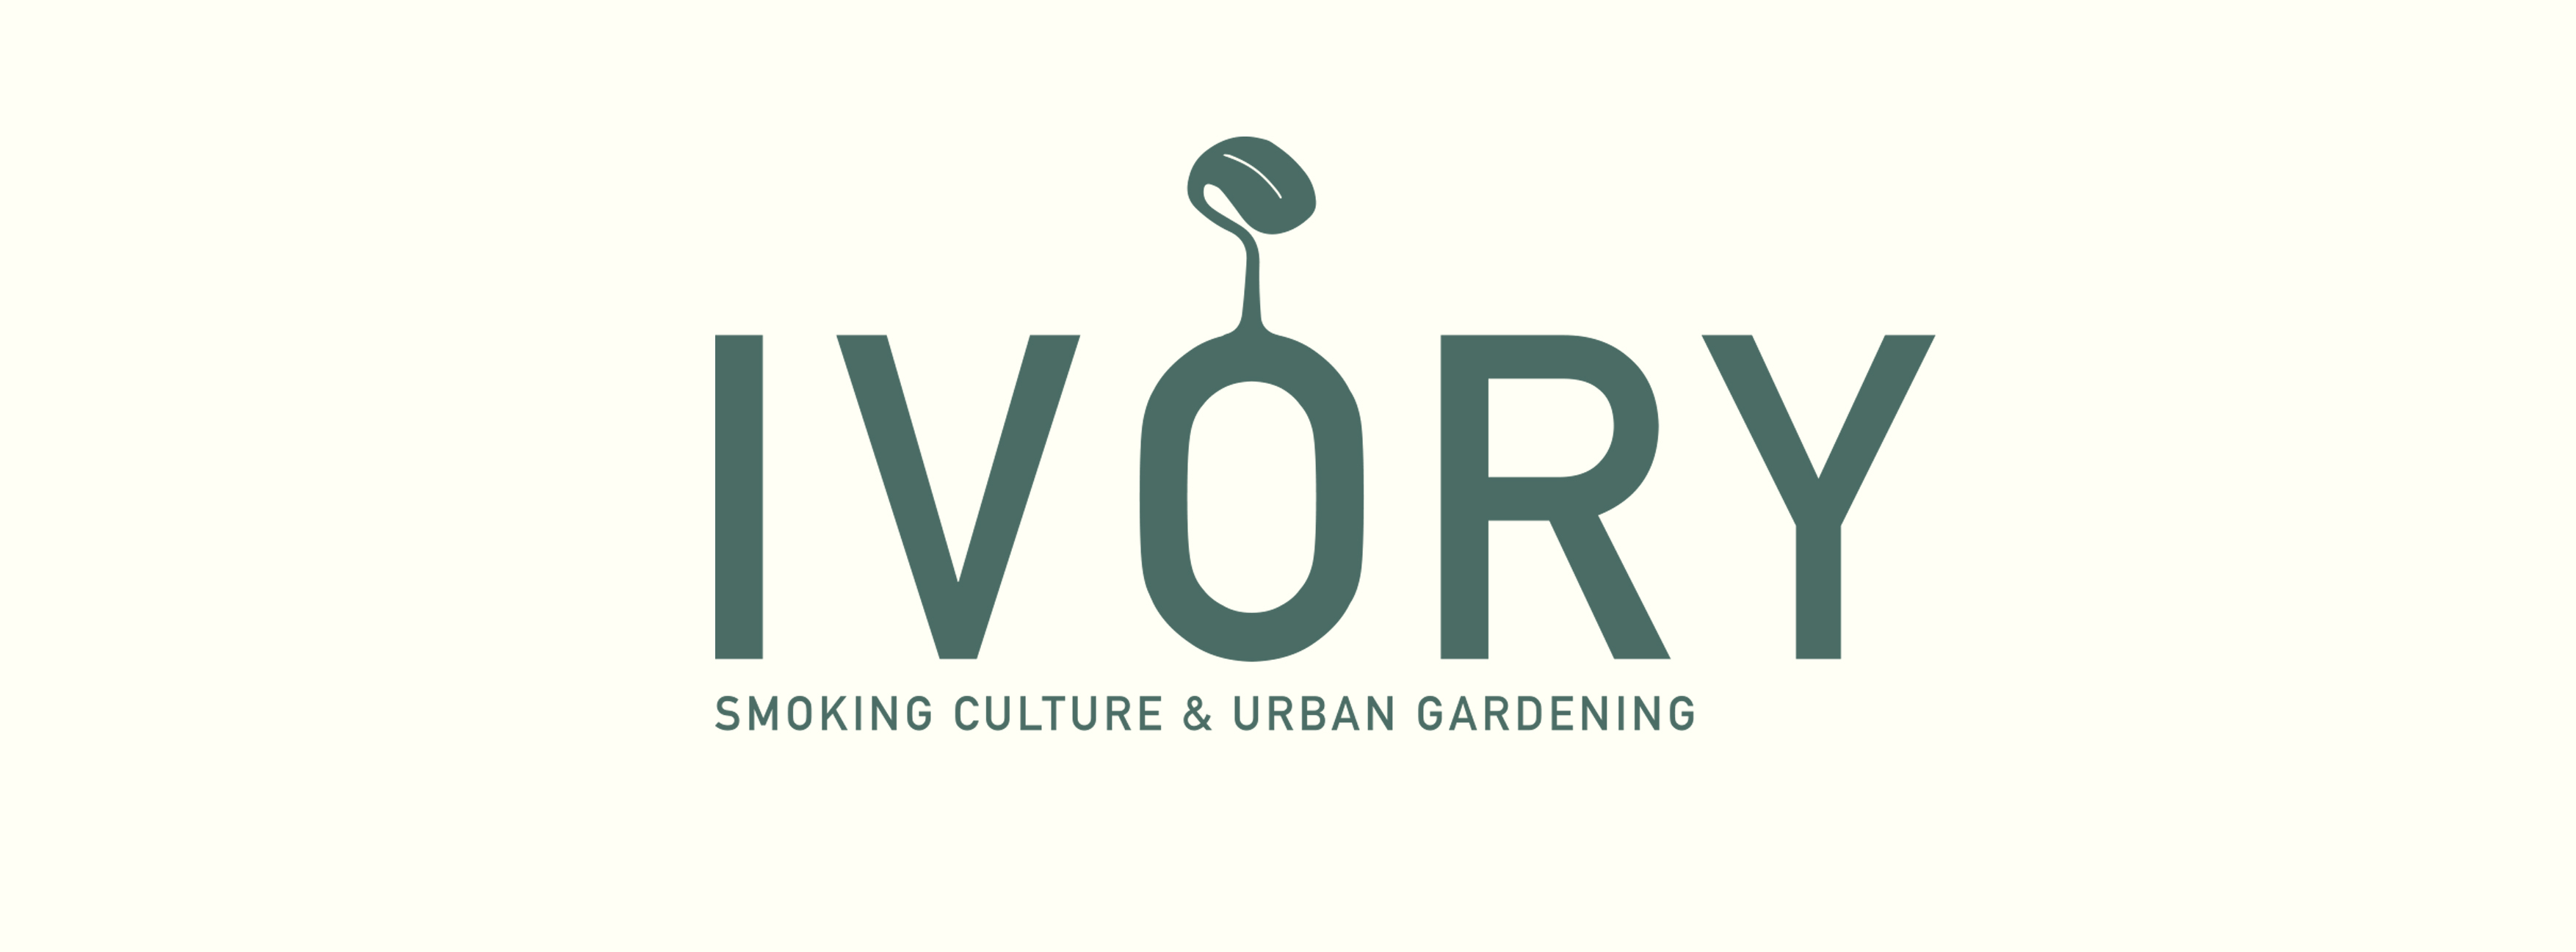 IVORY Stuttgart Smoking Culture & Urban Gardening